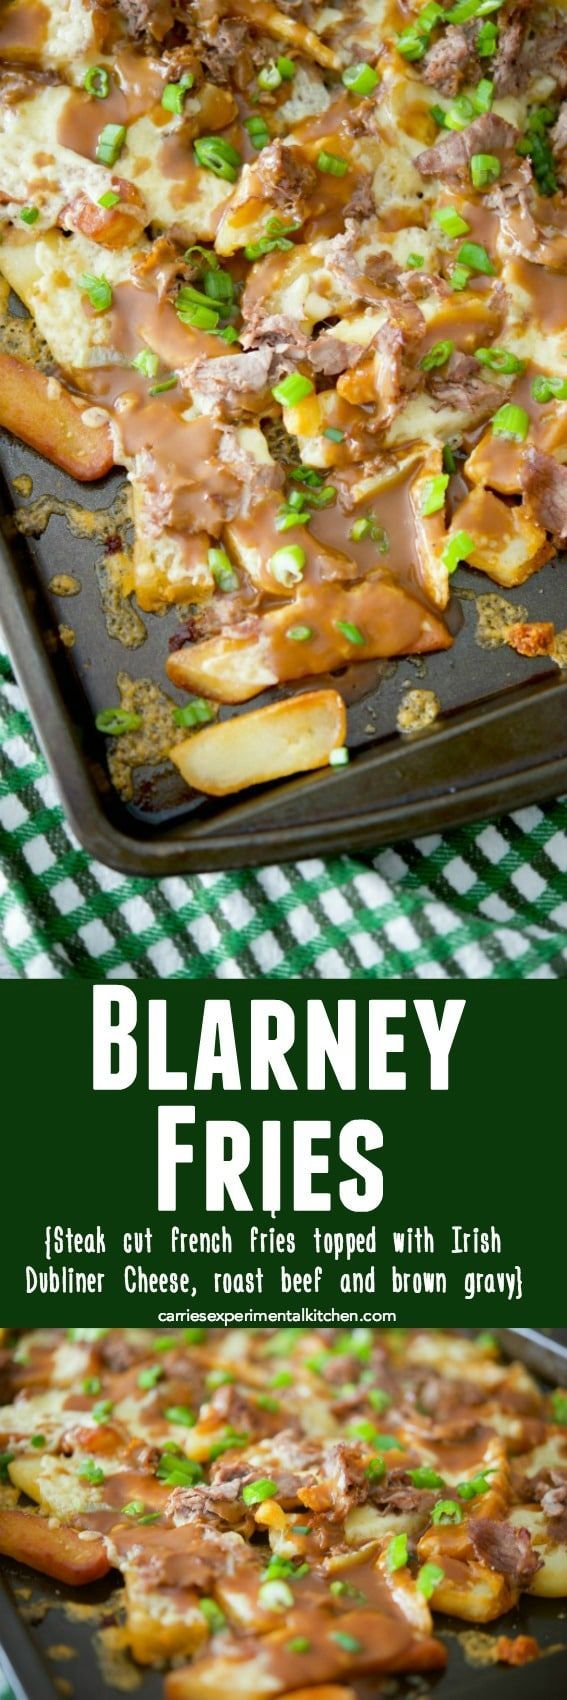 Blarney Fries. An easier version of an Irish Poutine. With steak cut french fries, Irish Dubliner cheese, and shaved roast beef. All topped with brown gravy. A yummy lunch or snack idea for St. Patrick's Day!!